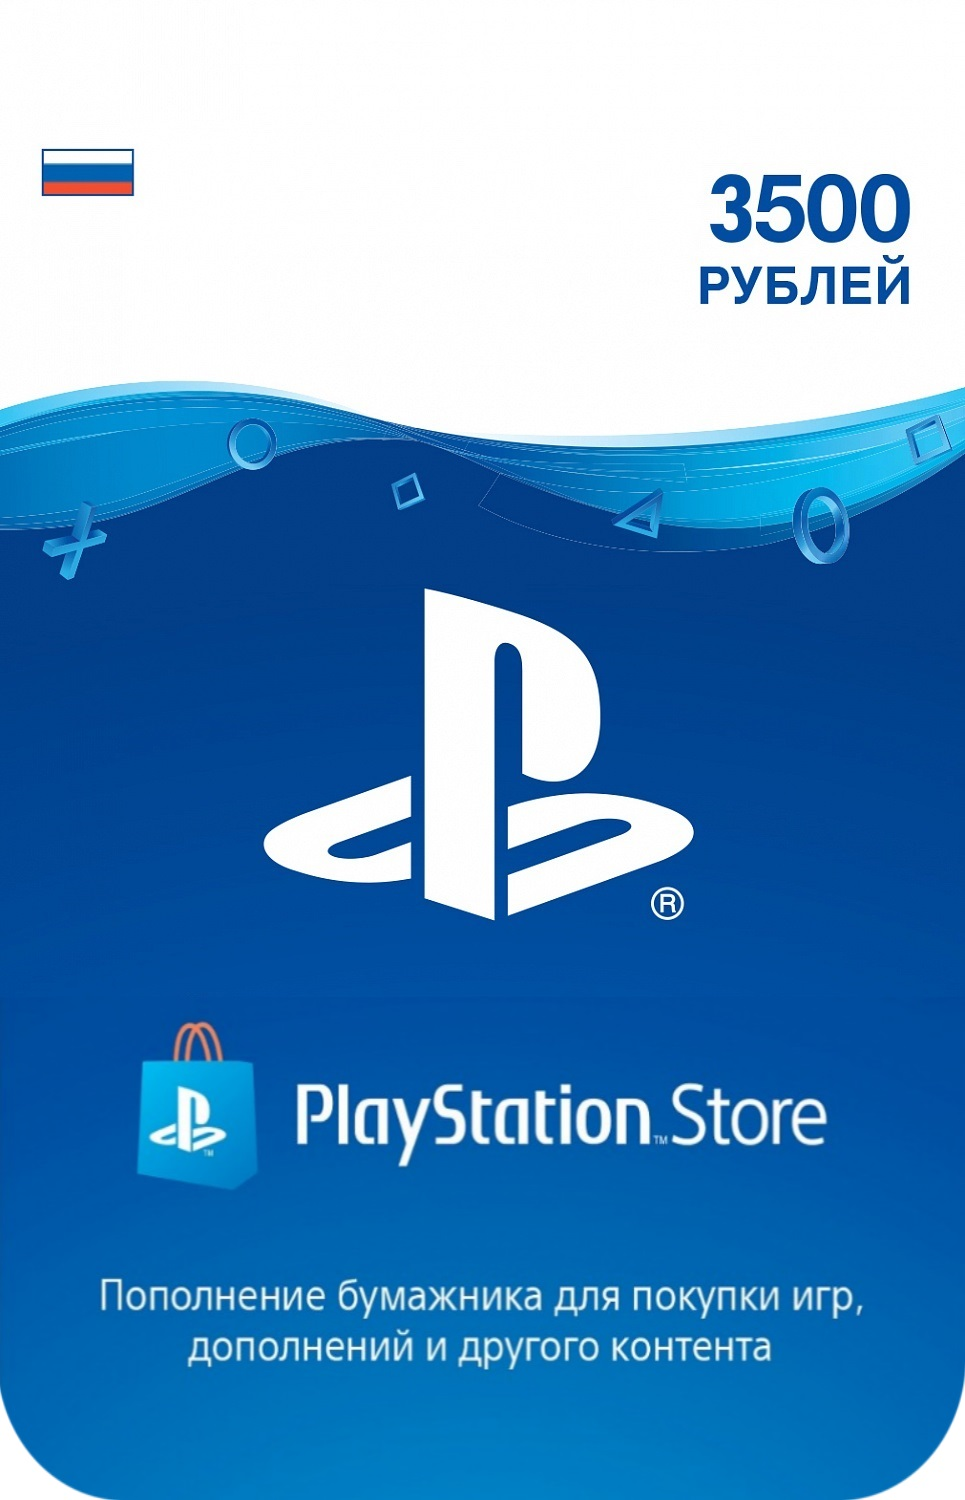 PSN 3500 rubles PlayStation Network (RUS) PAYMENT CARD